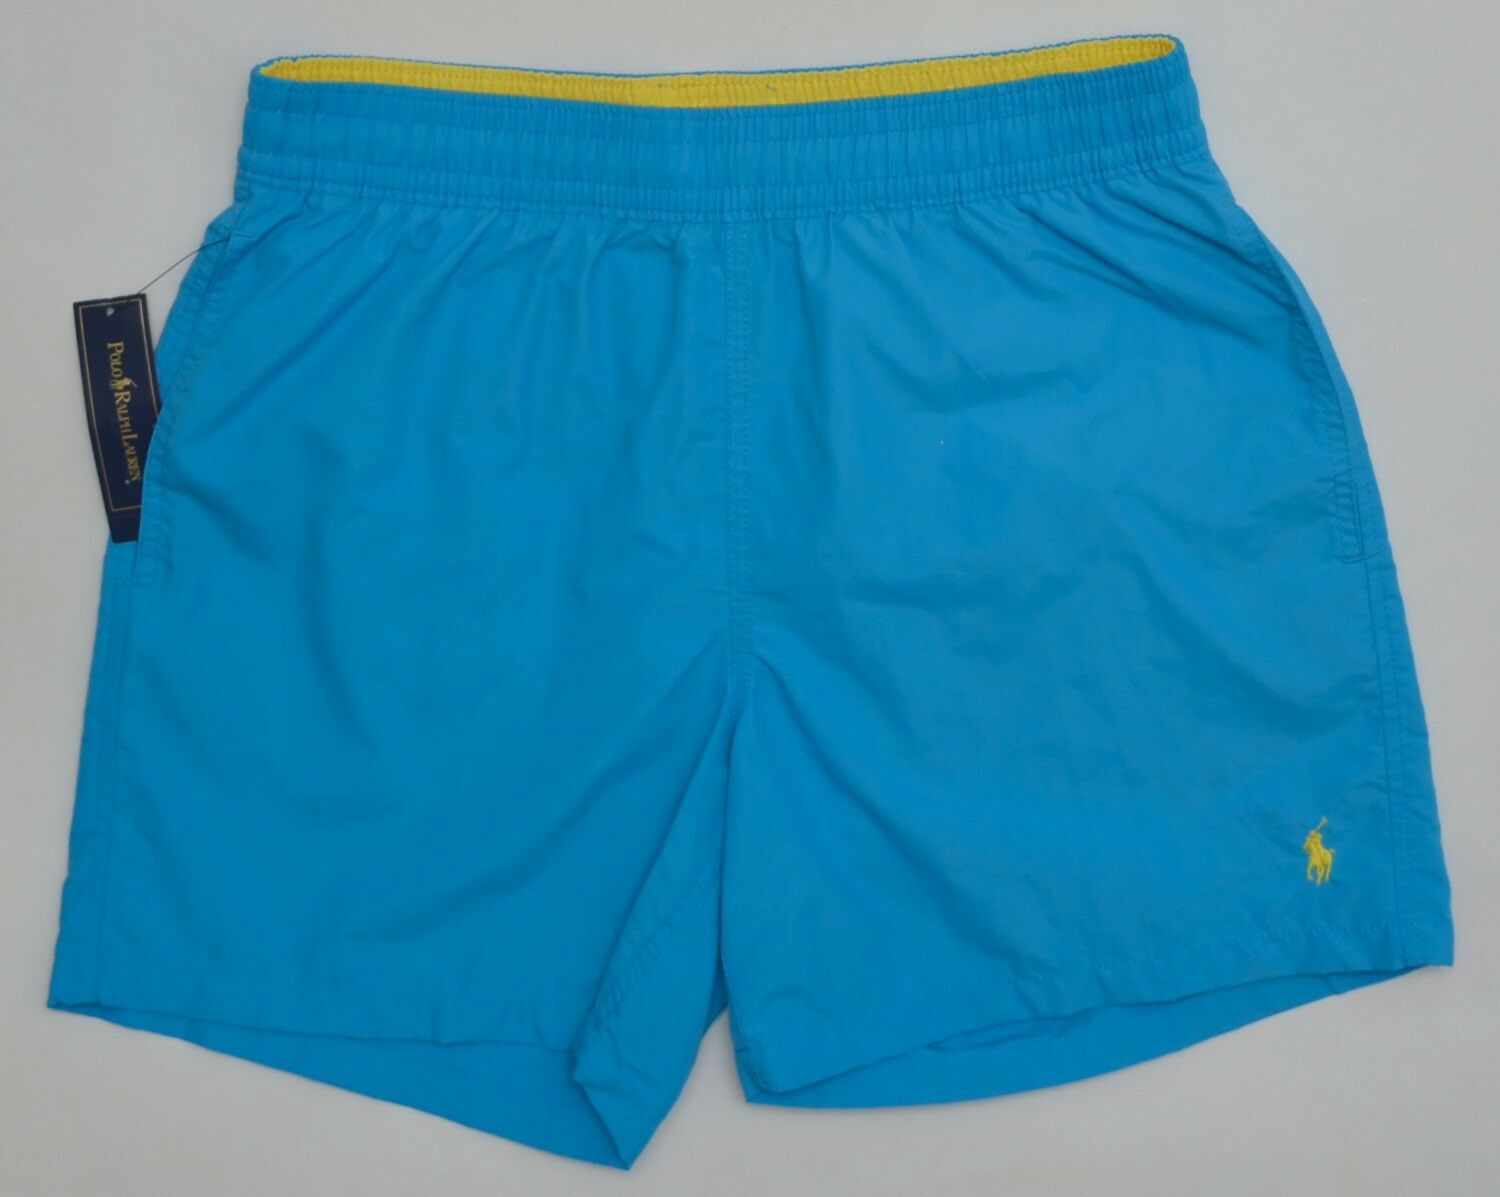 Men's POLO RALPH LAUREN Teal bluee Swimsuit Trunks Extra Large XL NWT NEW Nice